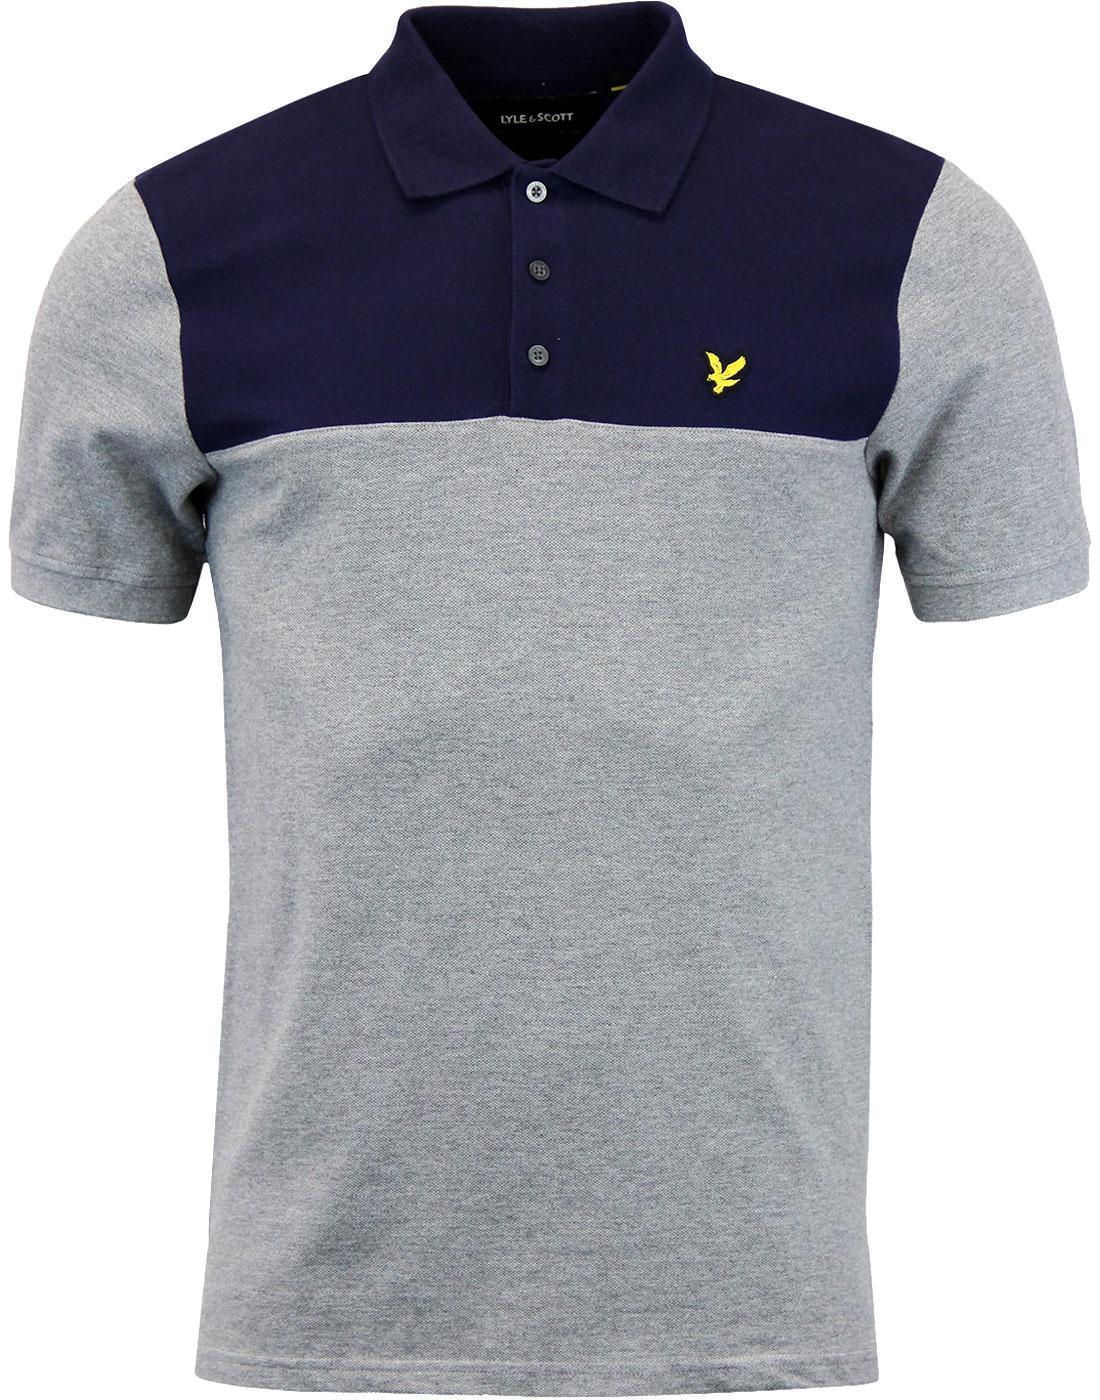 LYLE & SCOTT Retro Yoke Panel Pique Polo Shirt G